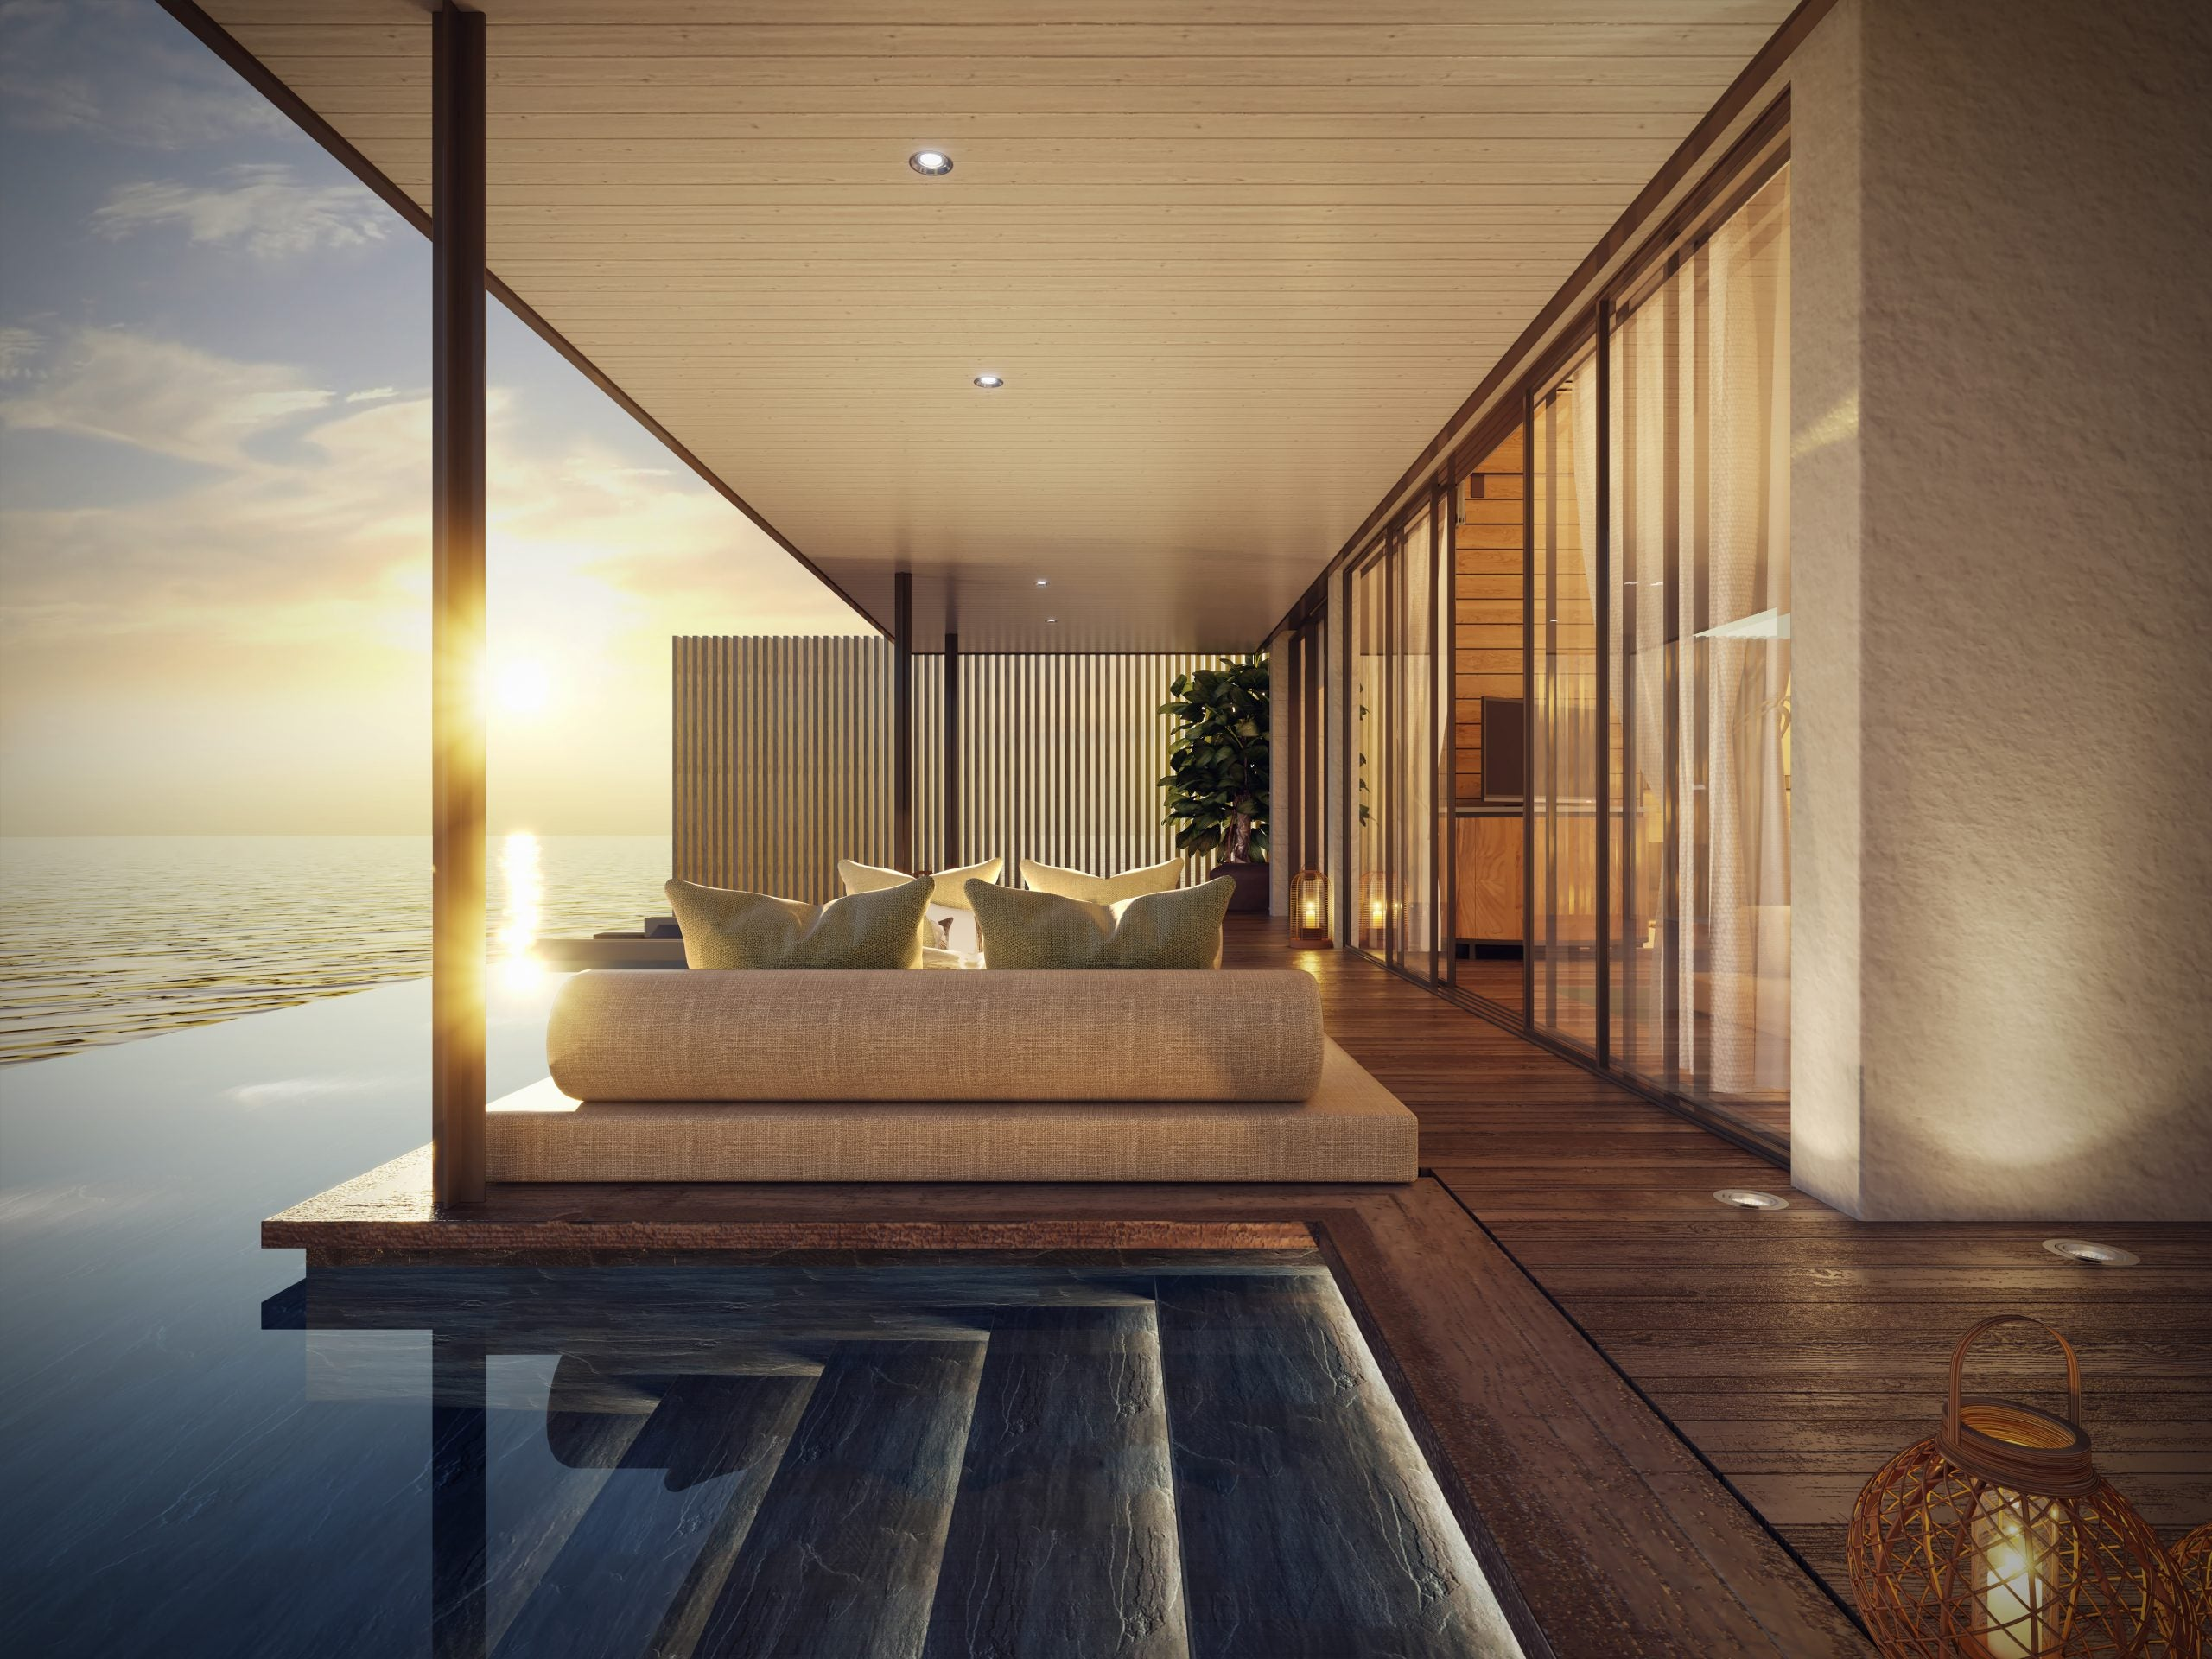 Hilton's new Maldives resort opens at the end of 2021 — and each room has a private pool - The Points Guy